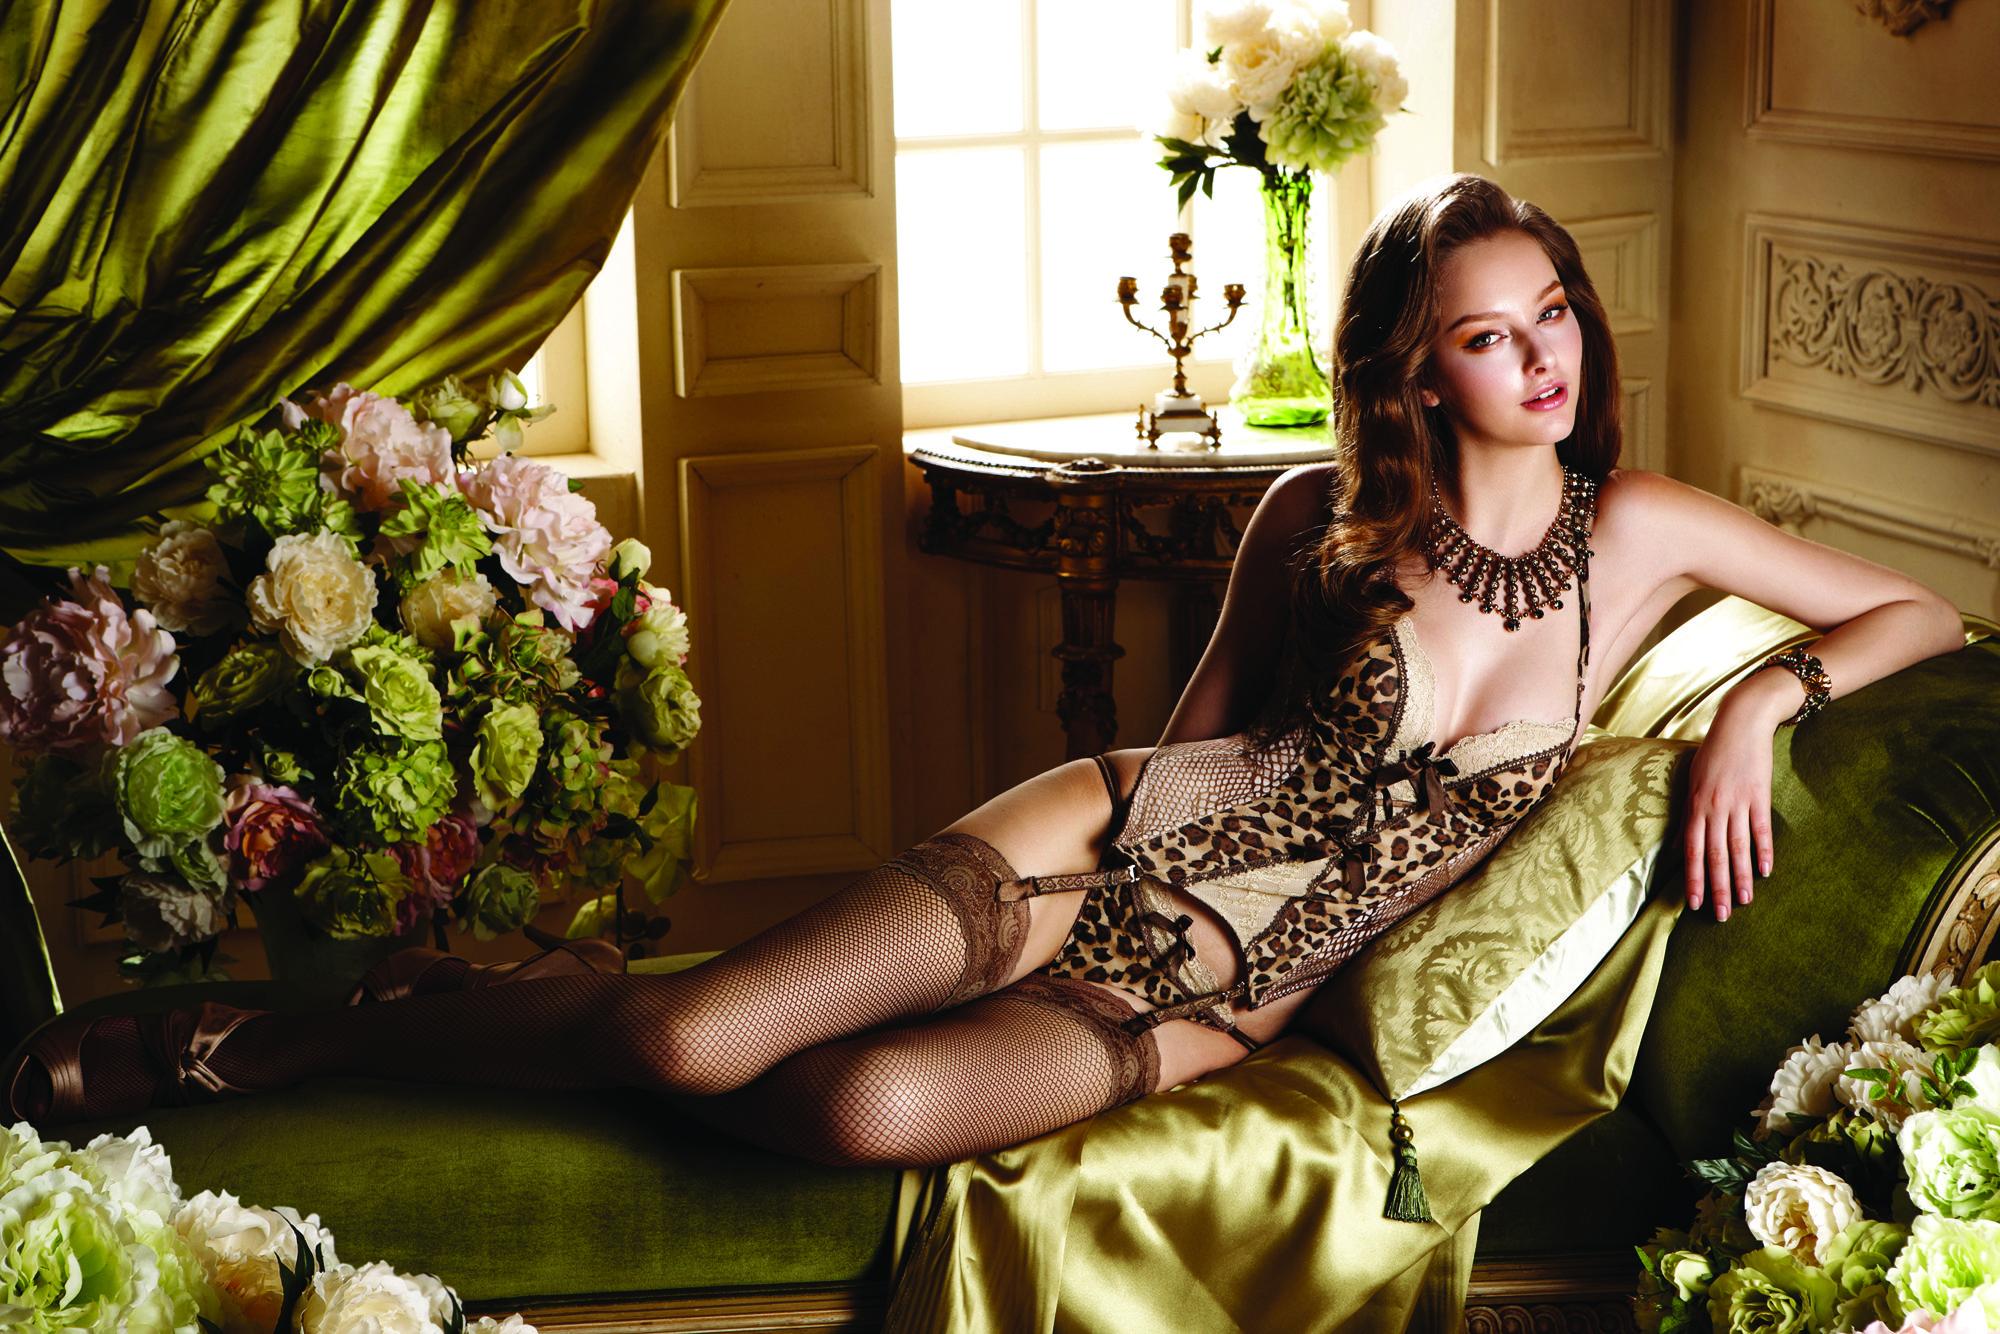 Best images and tv shows like lingerie